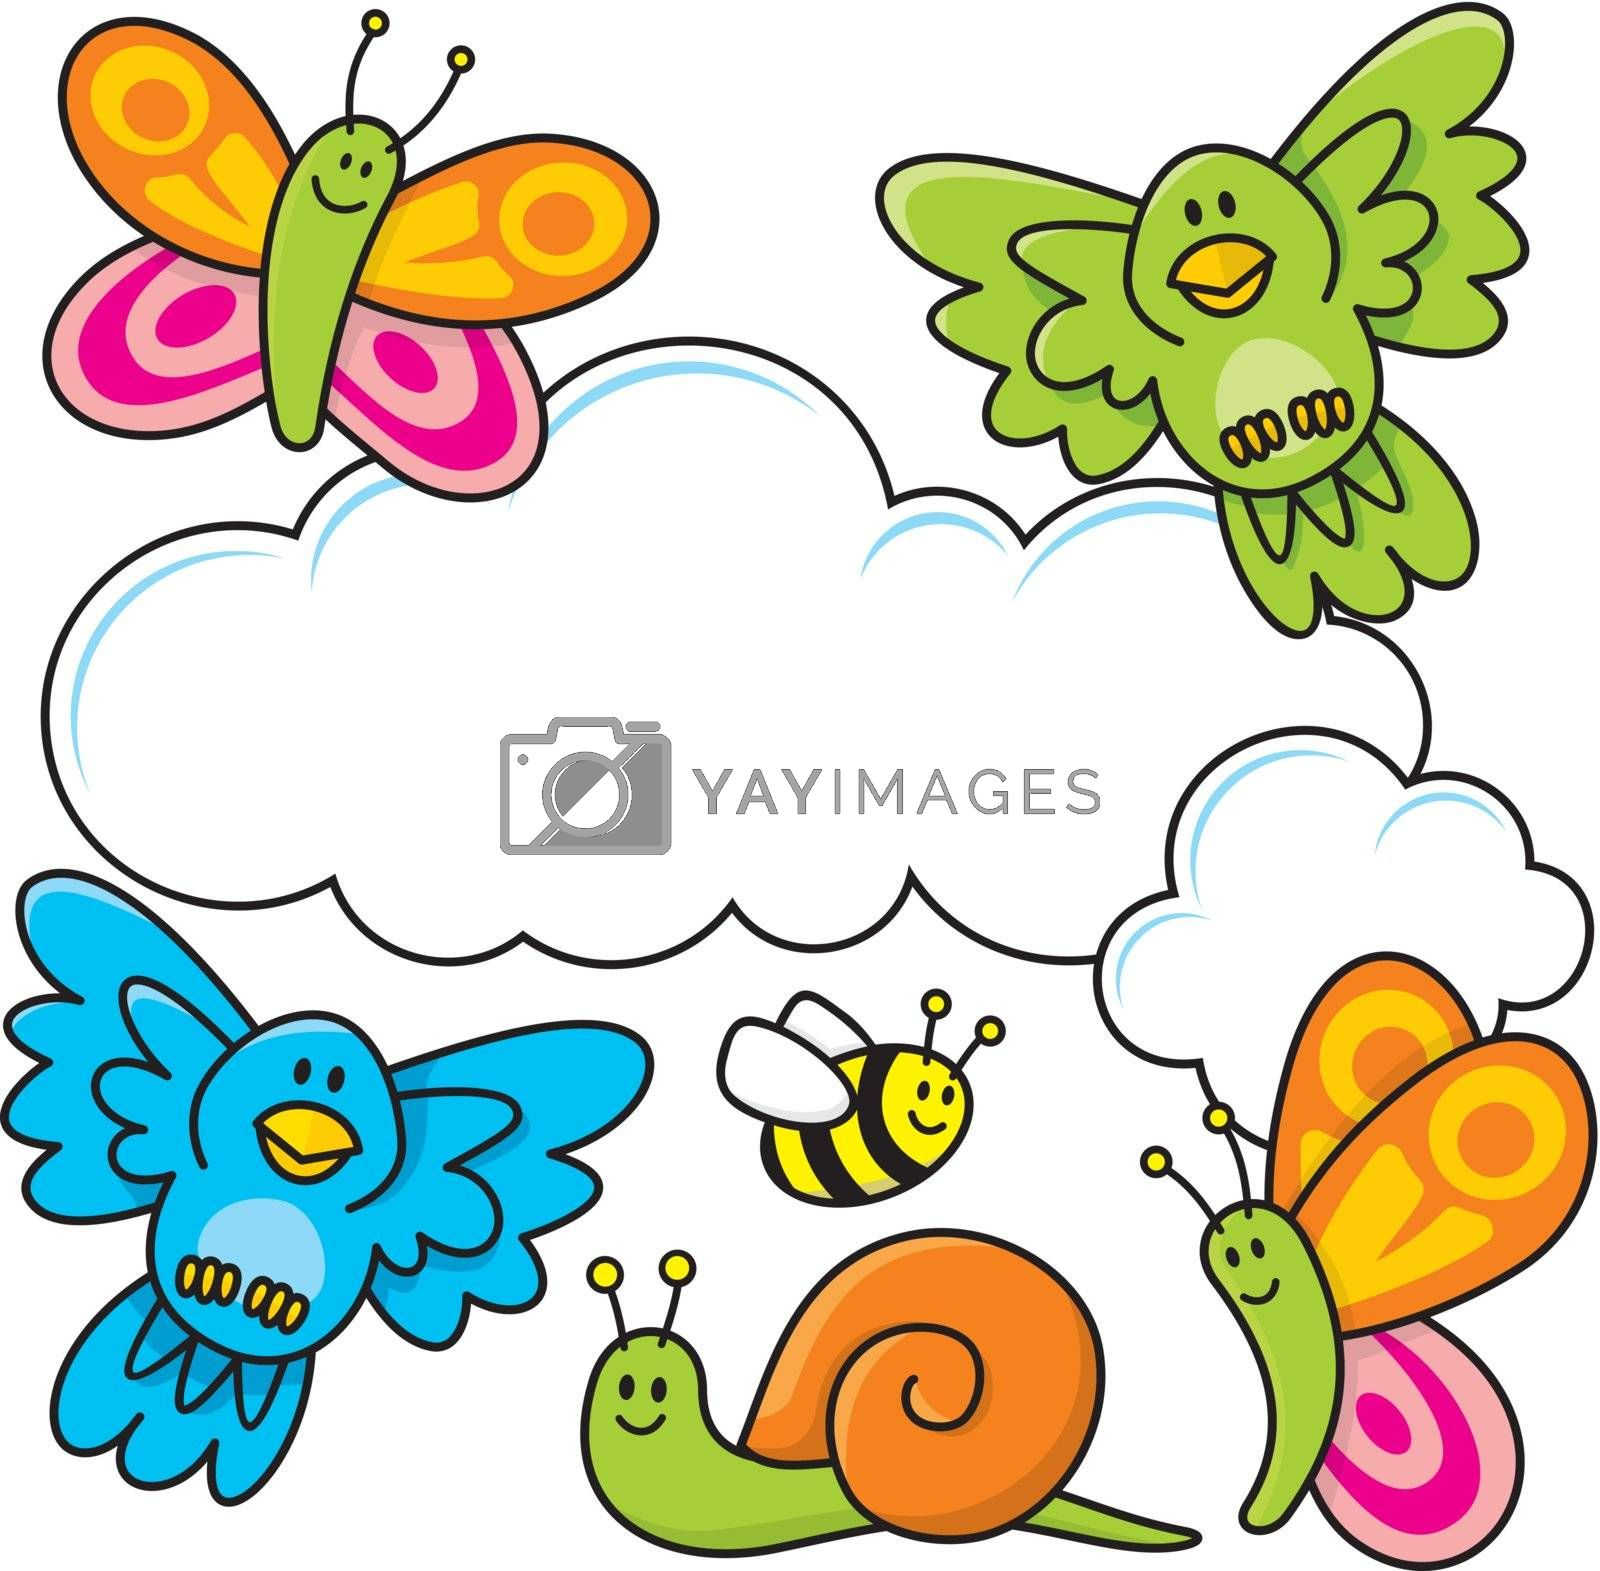 A spring scene with baby animal cartoons, butterflies, birds, bee and a snail.